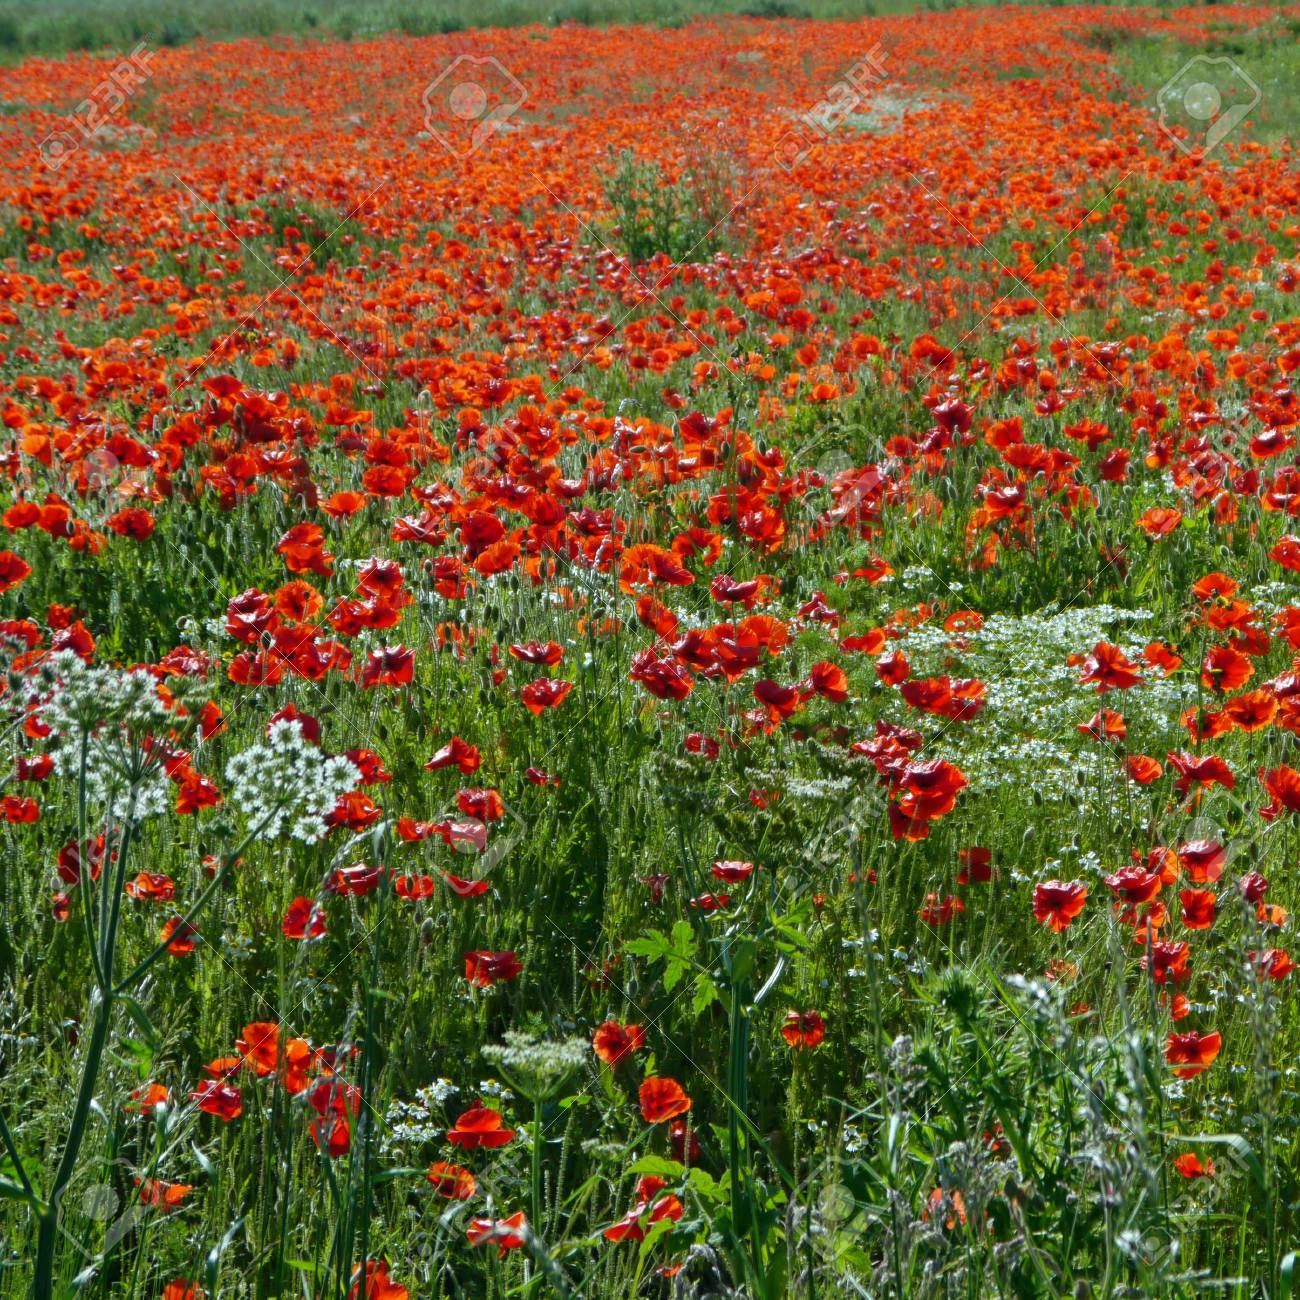 A meadow full of poppies and grasses in rural English countryside Standard-Bild - 81777945